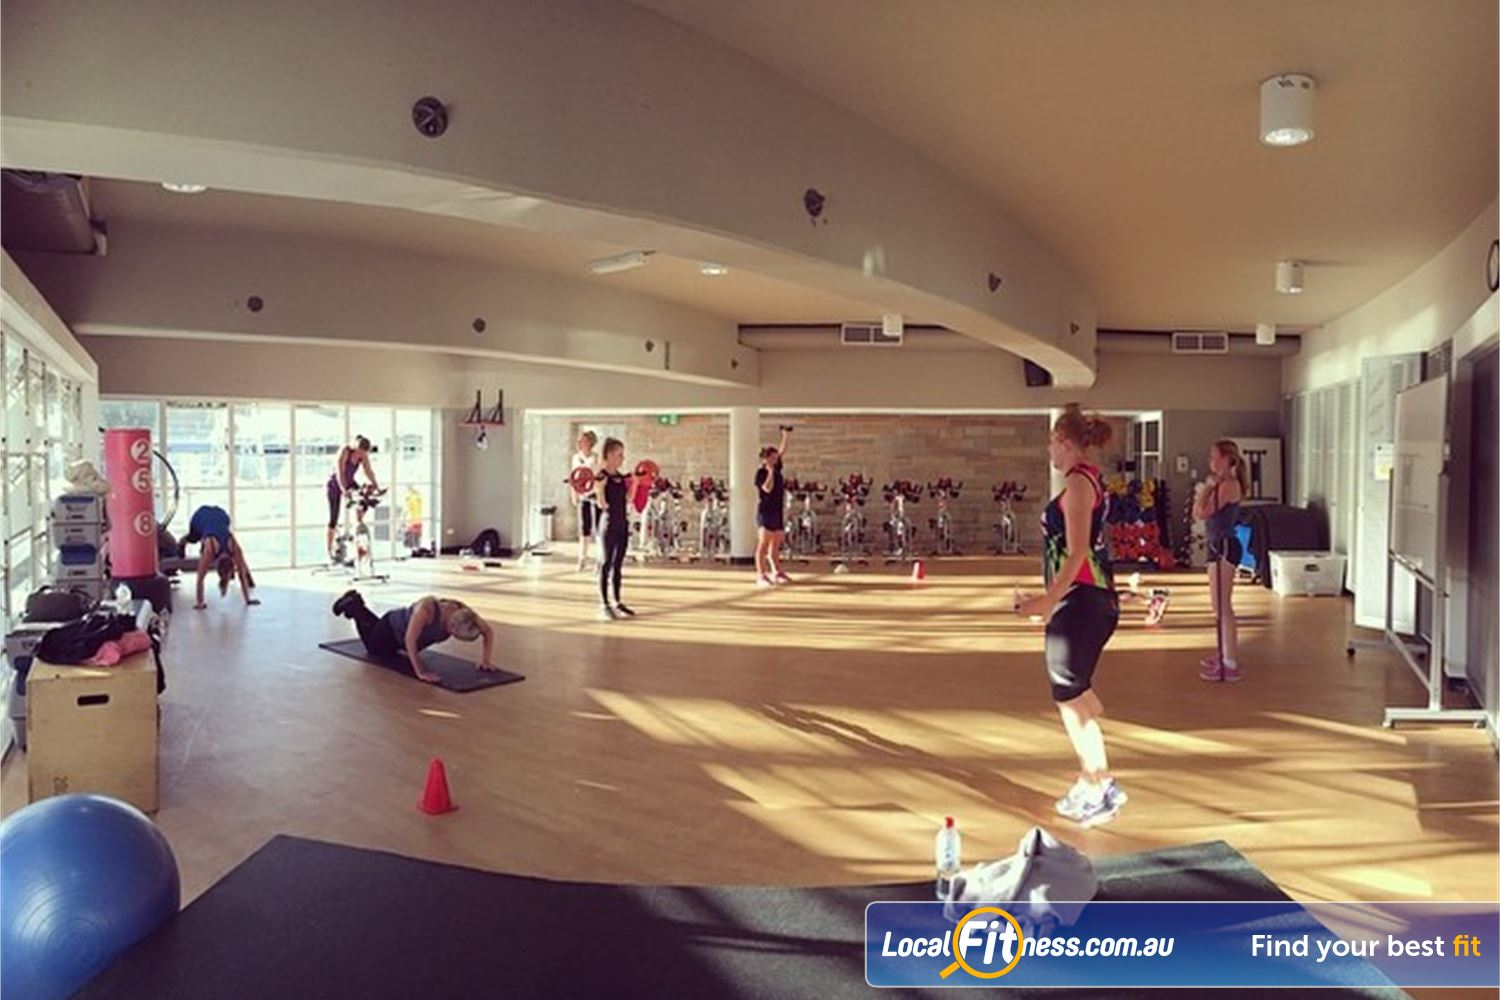 Victoria Park Pool Near Sydney Gateway Facility Popular classes inc. Camperdown Zumba, Yoga and Pilates.